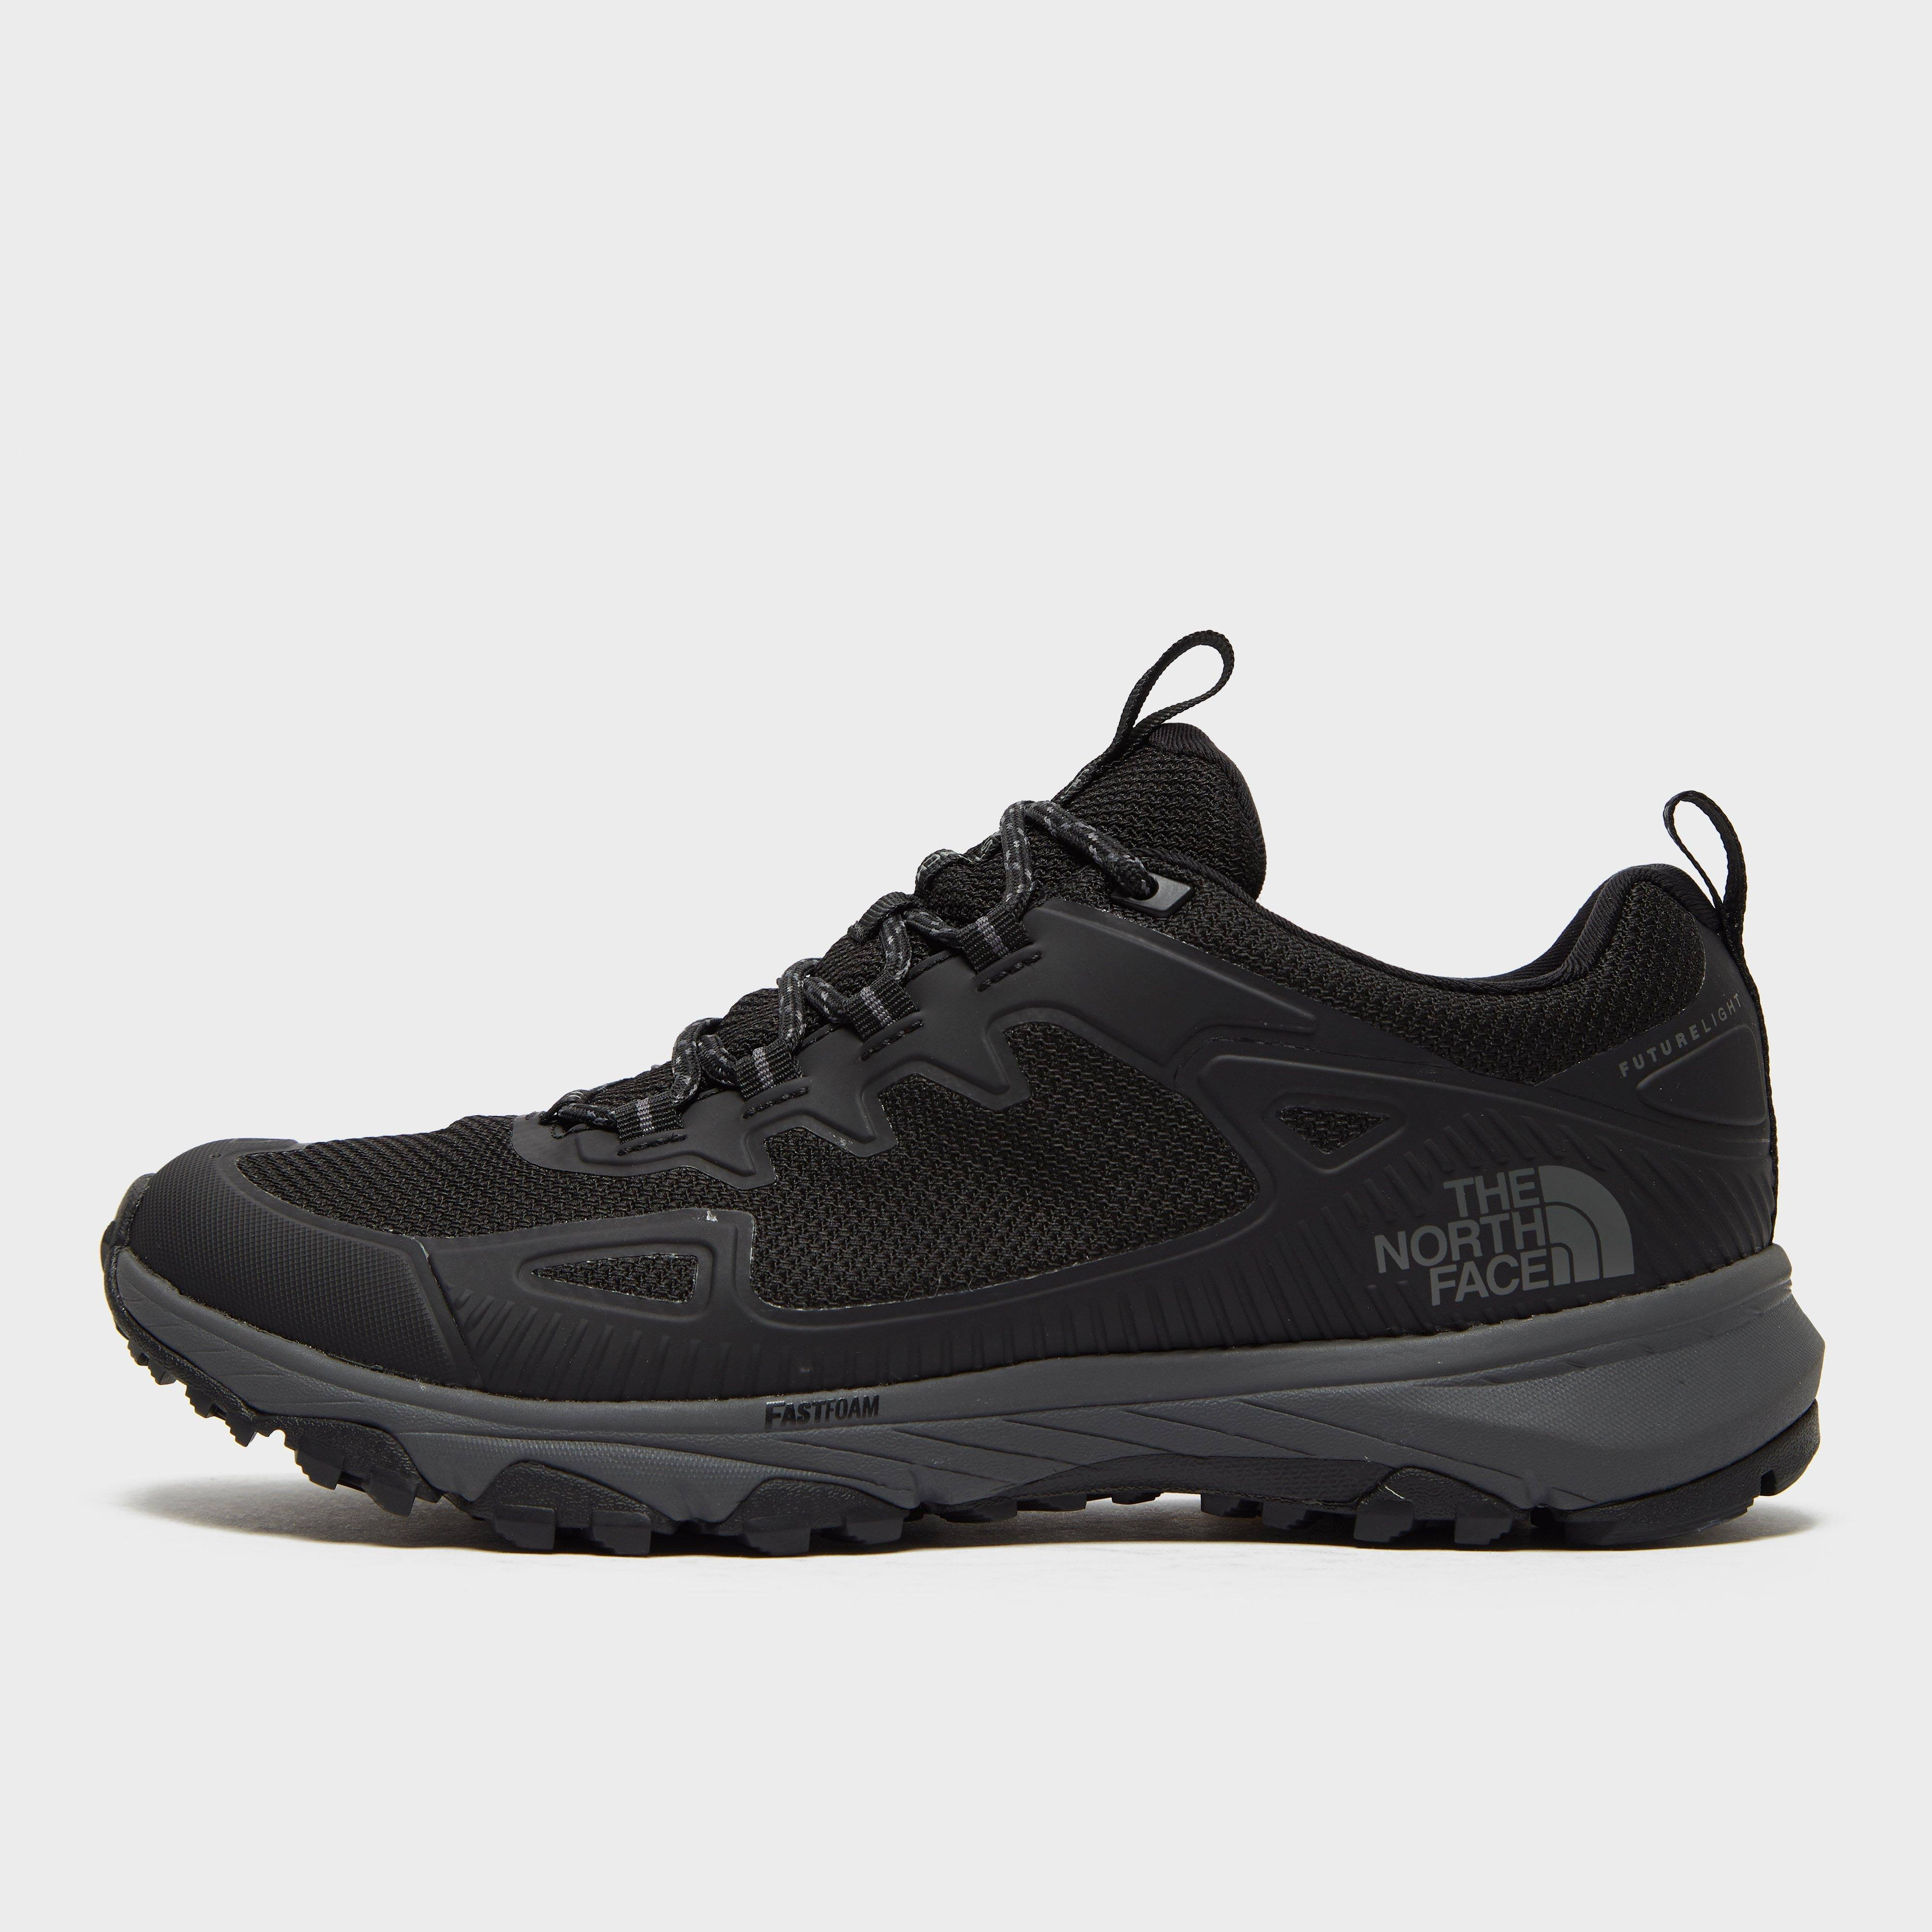 The North Face Ultra Fastpack IV Futurelight Shoes Men's